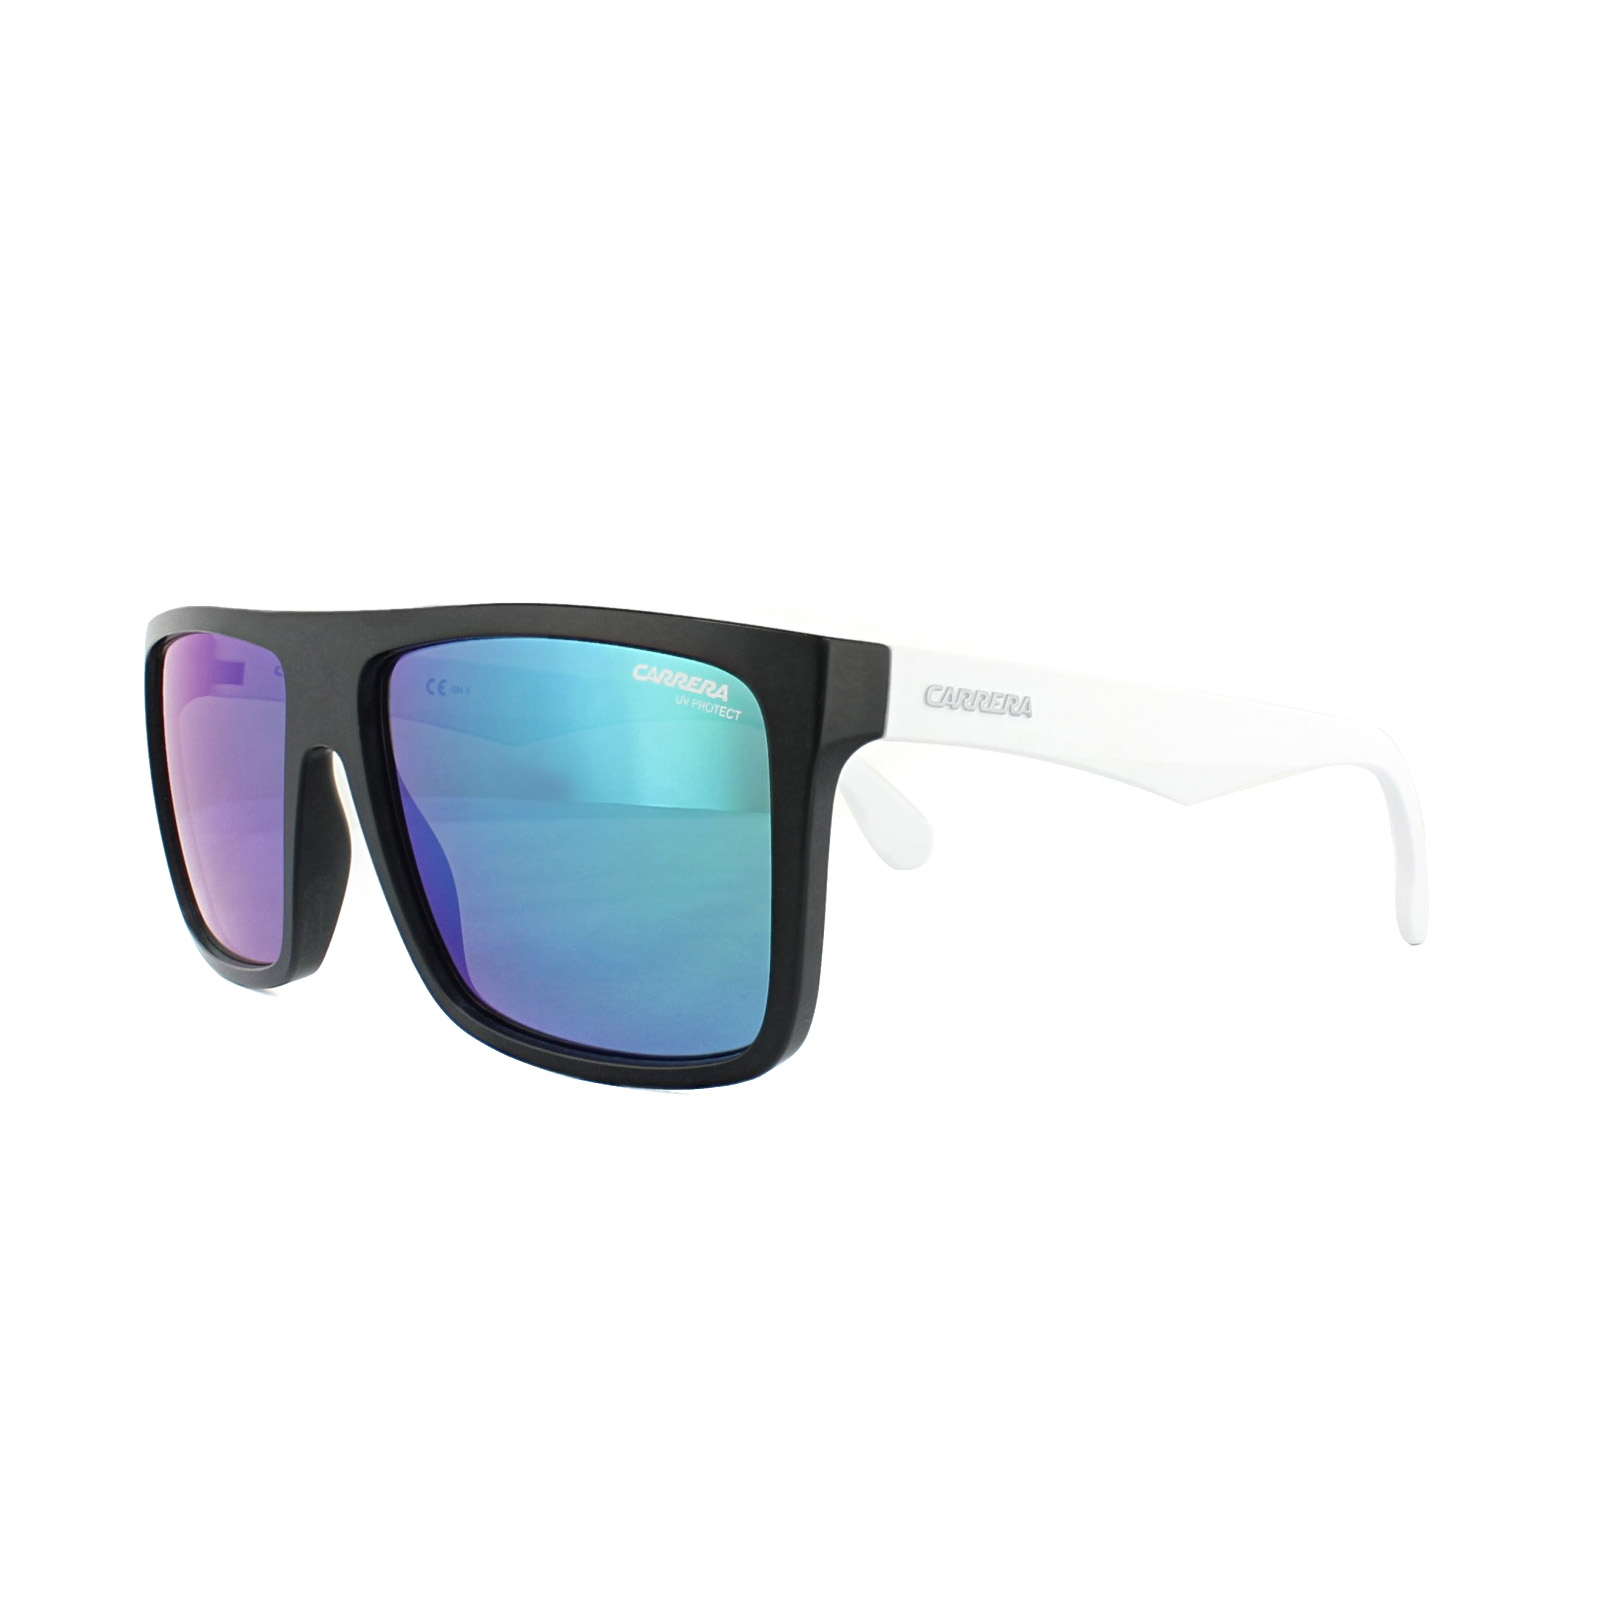 61ded4441ac Sentinel Carrera Sunglasses Carrera 5039 S 4NL Z9 Matt Black White Green  Mirror